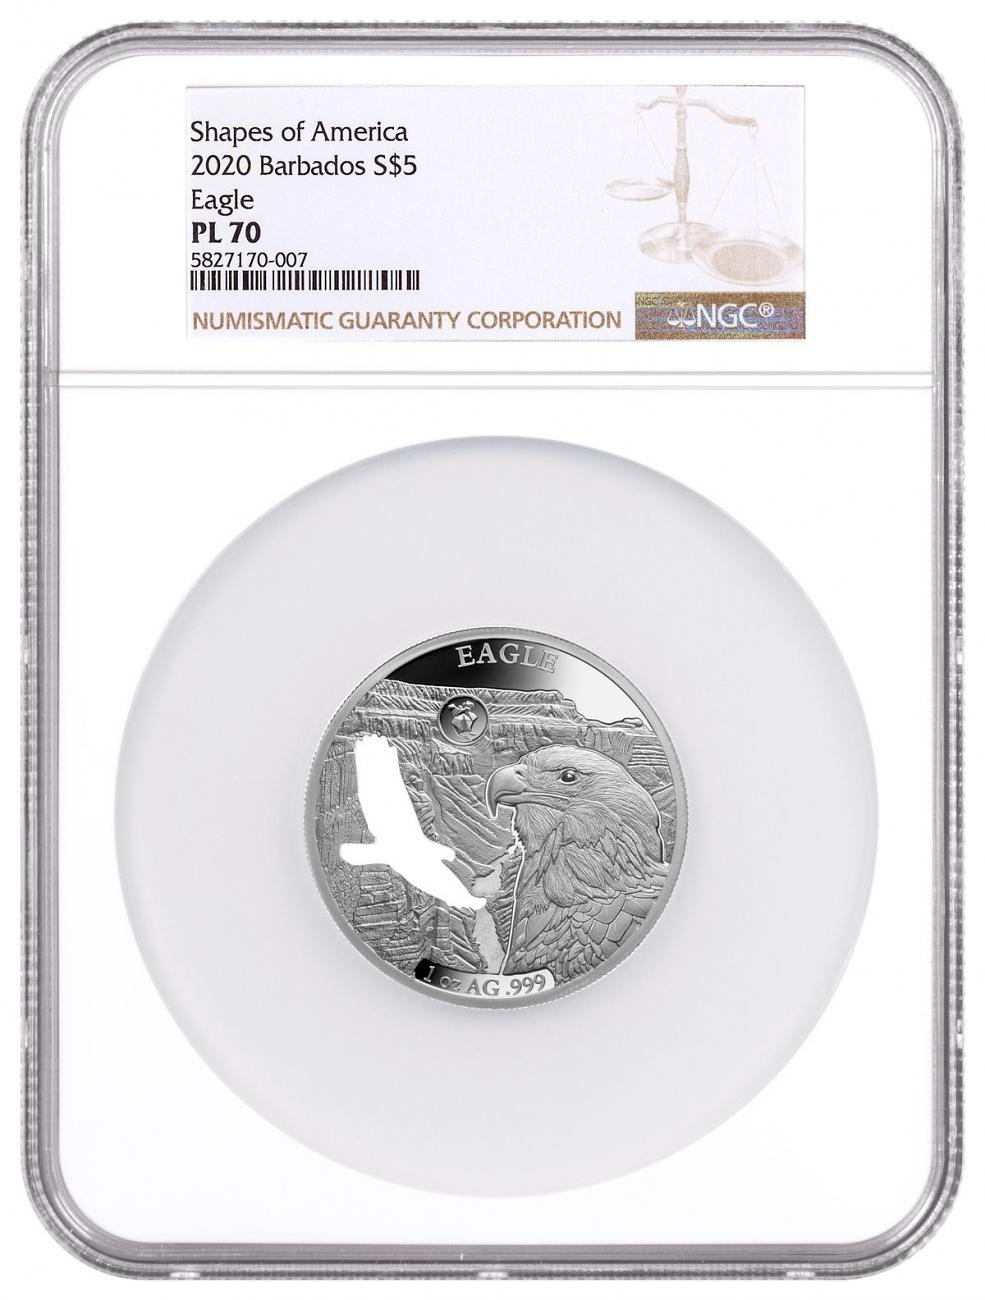 2020 Barbados Shapes of America - Cut-Out High Relief 1 oz Proof-Like Silver $5 Coin Eagle NGC PL70